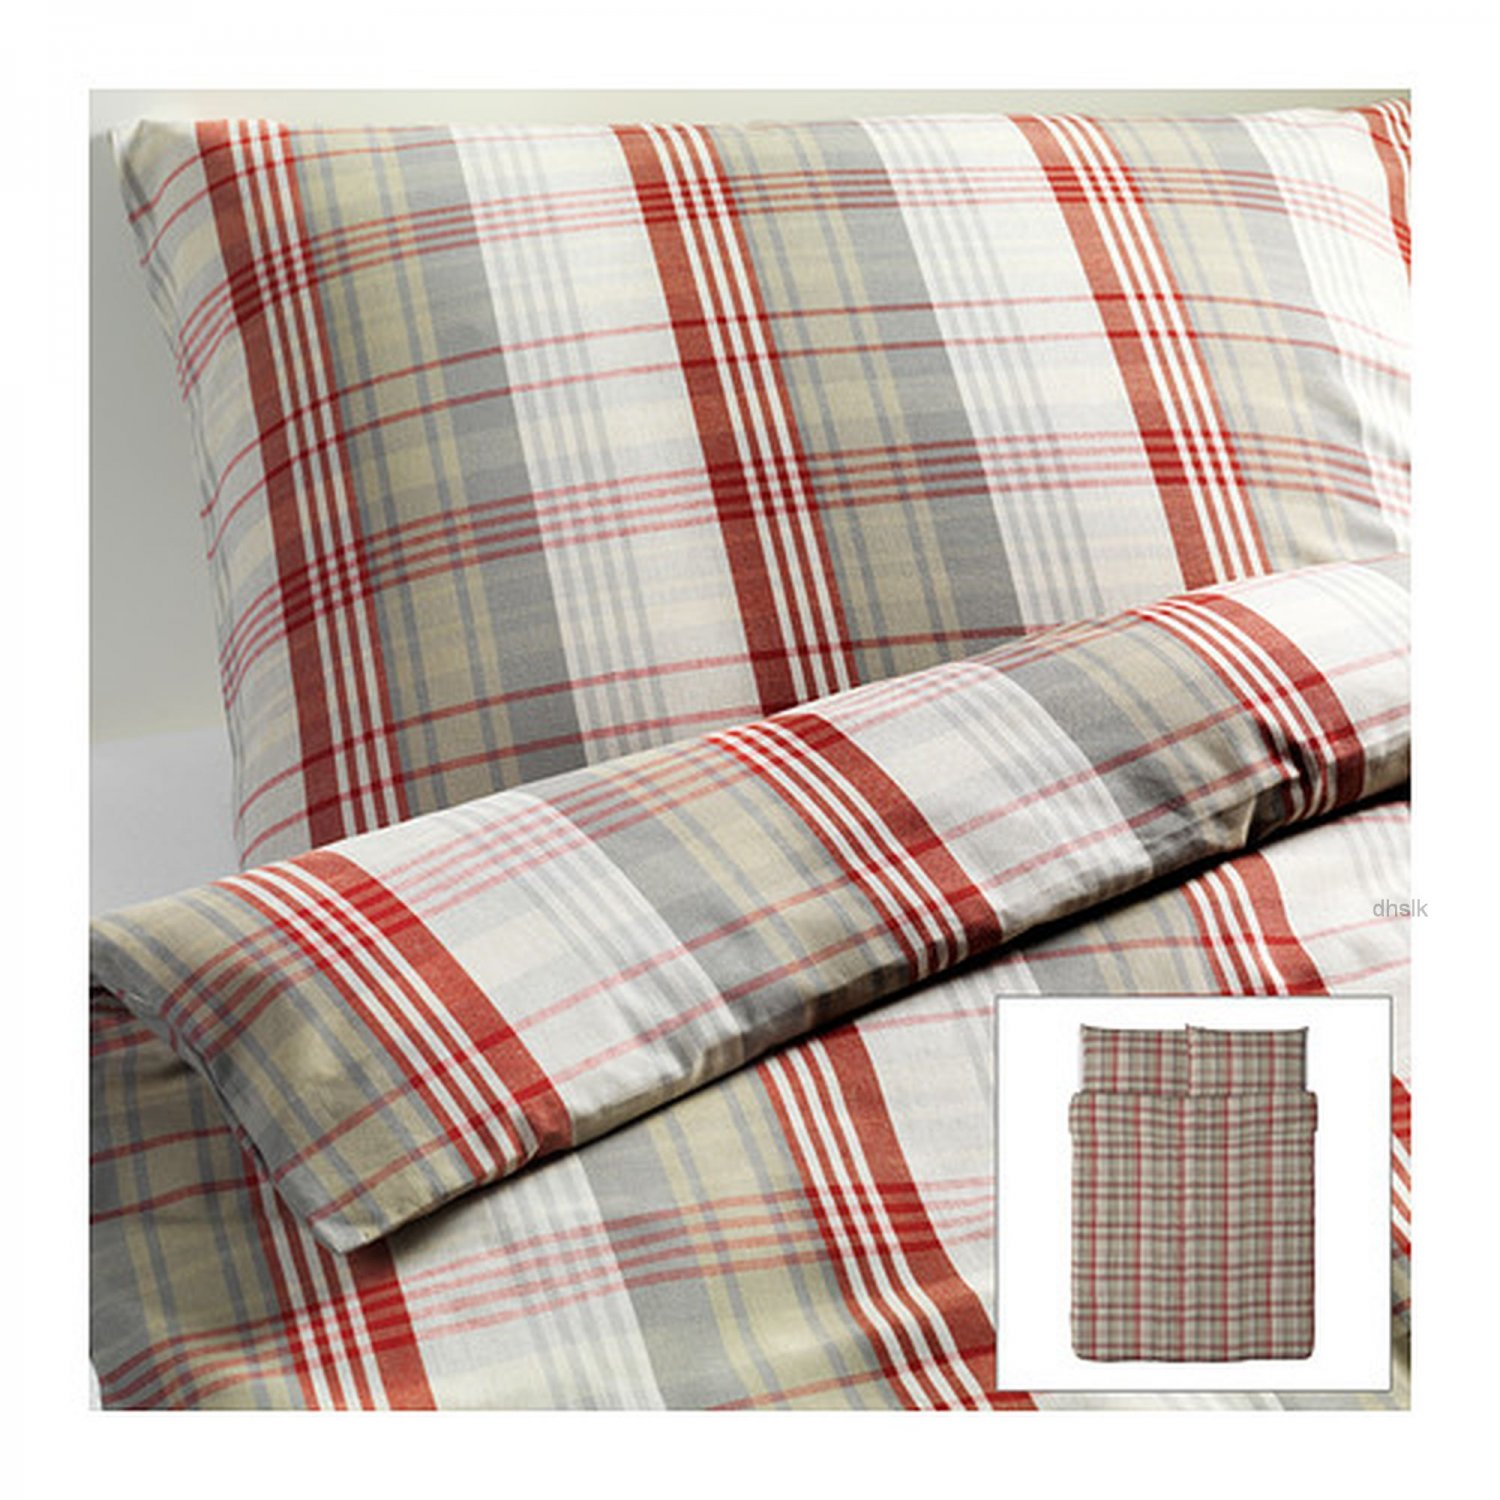 Ikea Benzy Queen Full Duvet Cover Set Red Beige Plaid Yarn